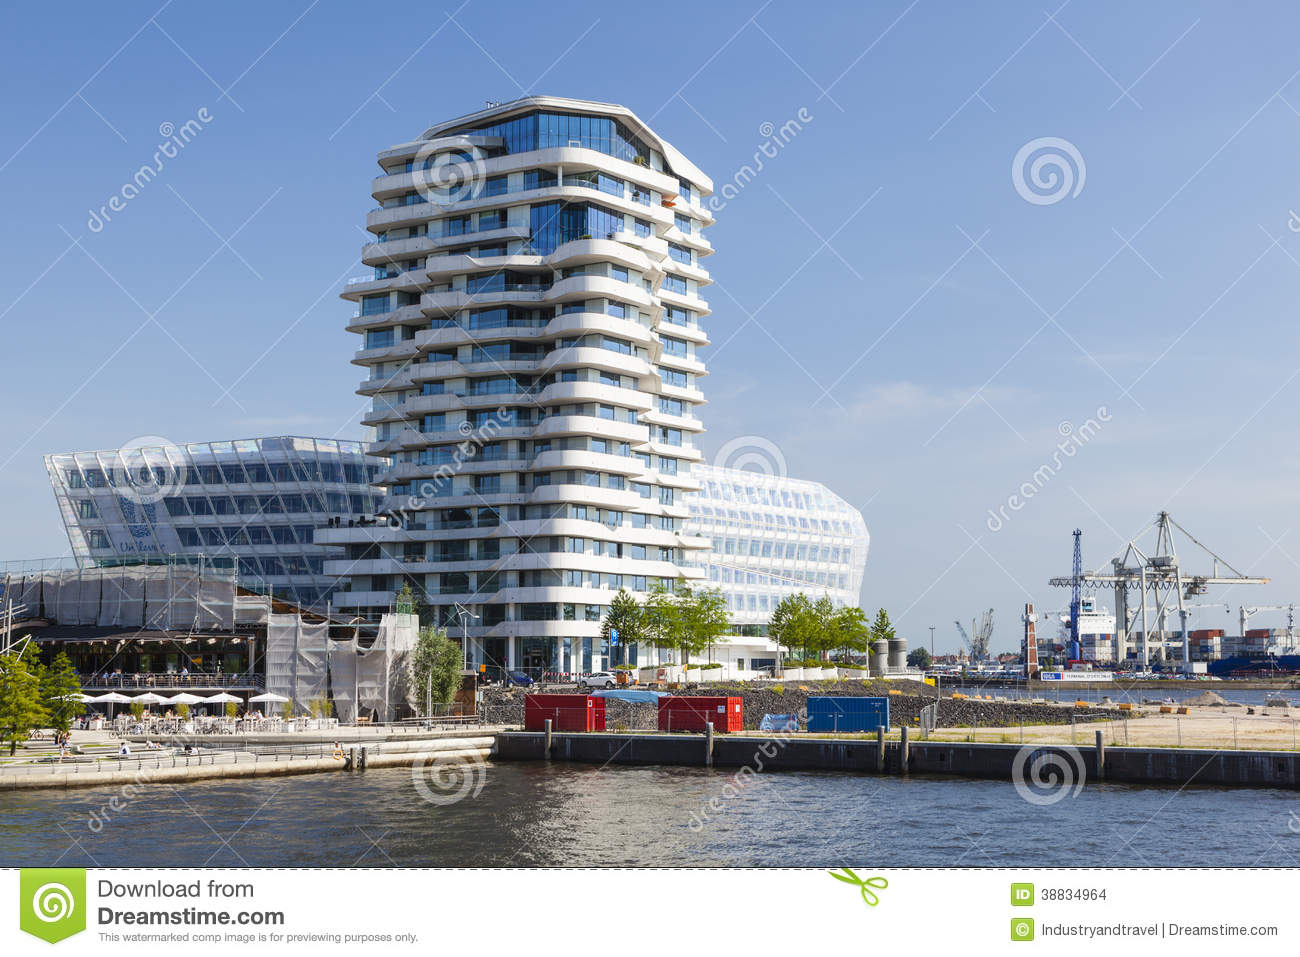 marco polo tower in hamburg duitsland redactie. Black Bedroom Furniture Sets. Home Design Ideas